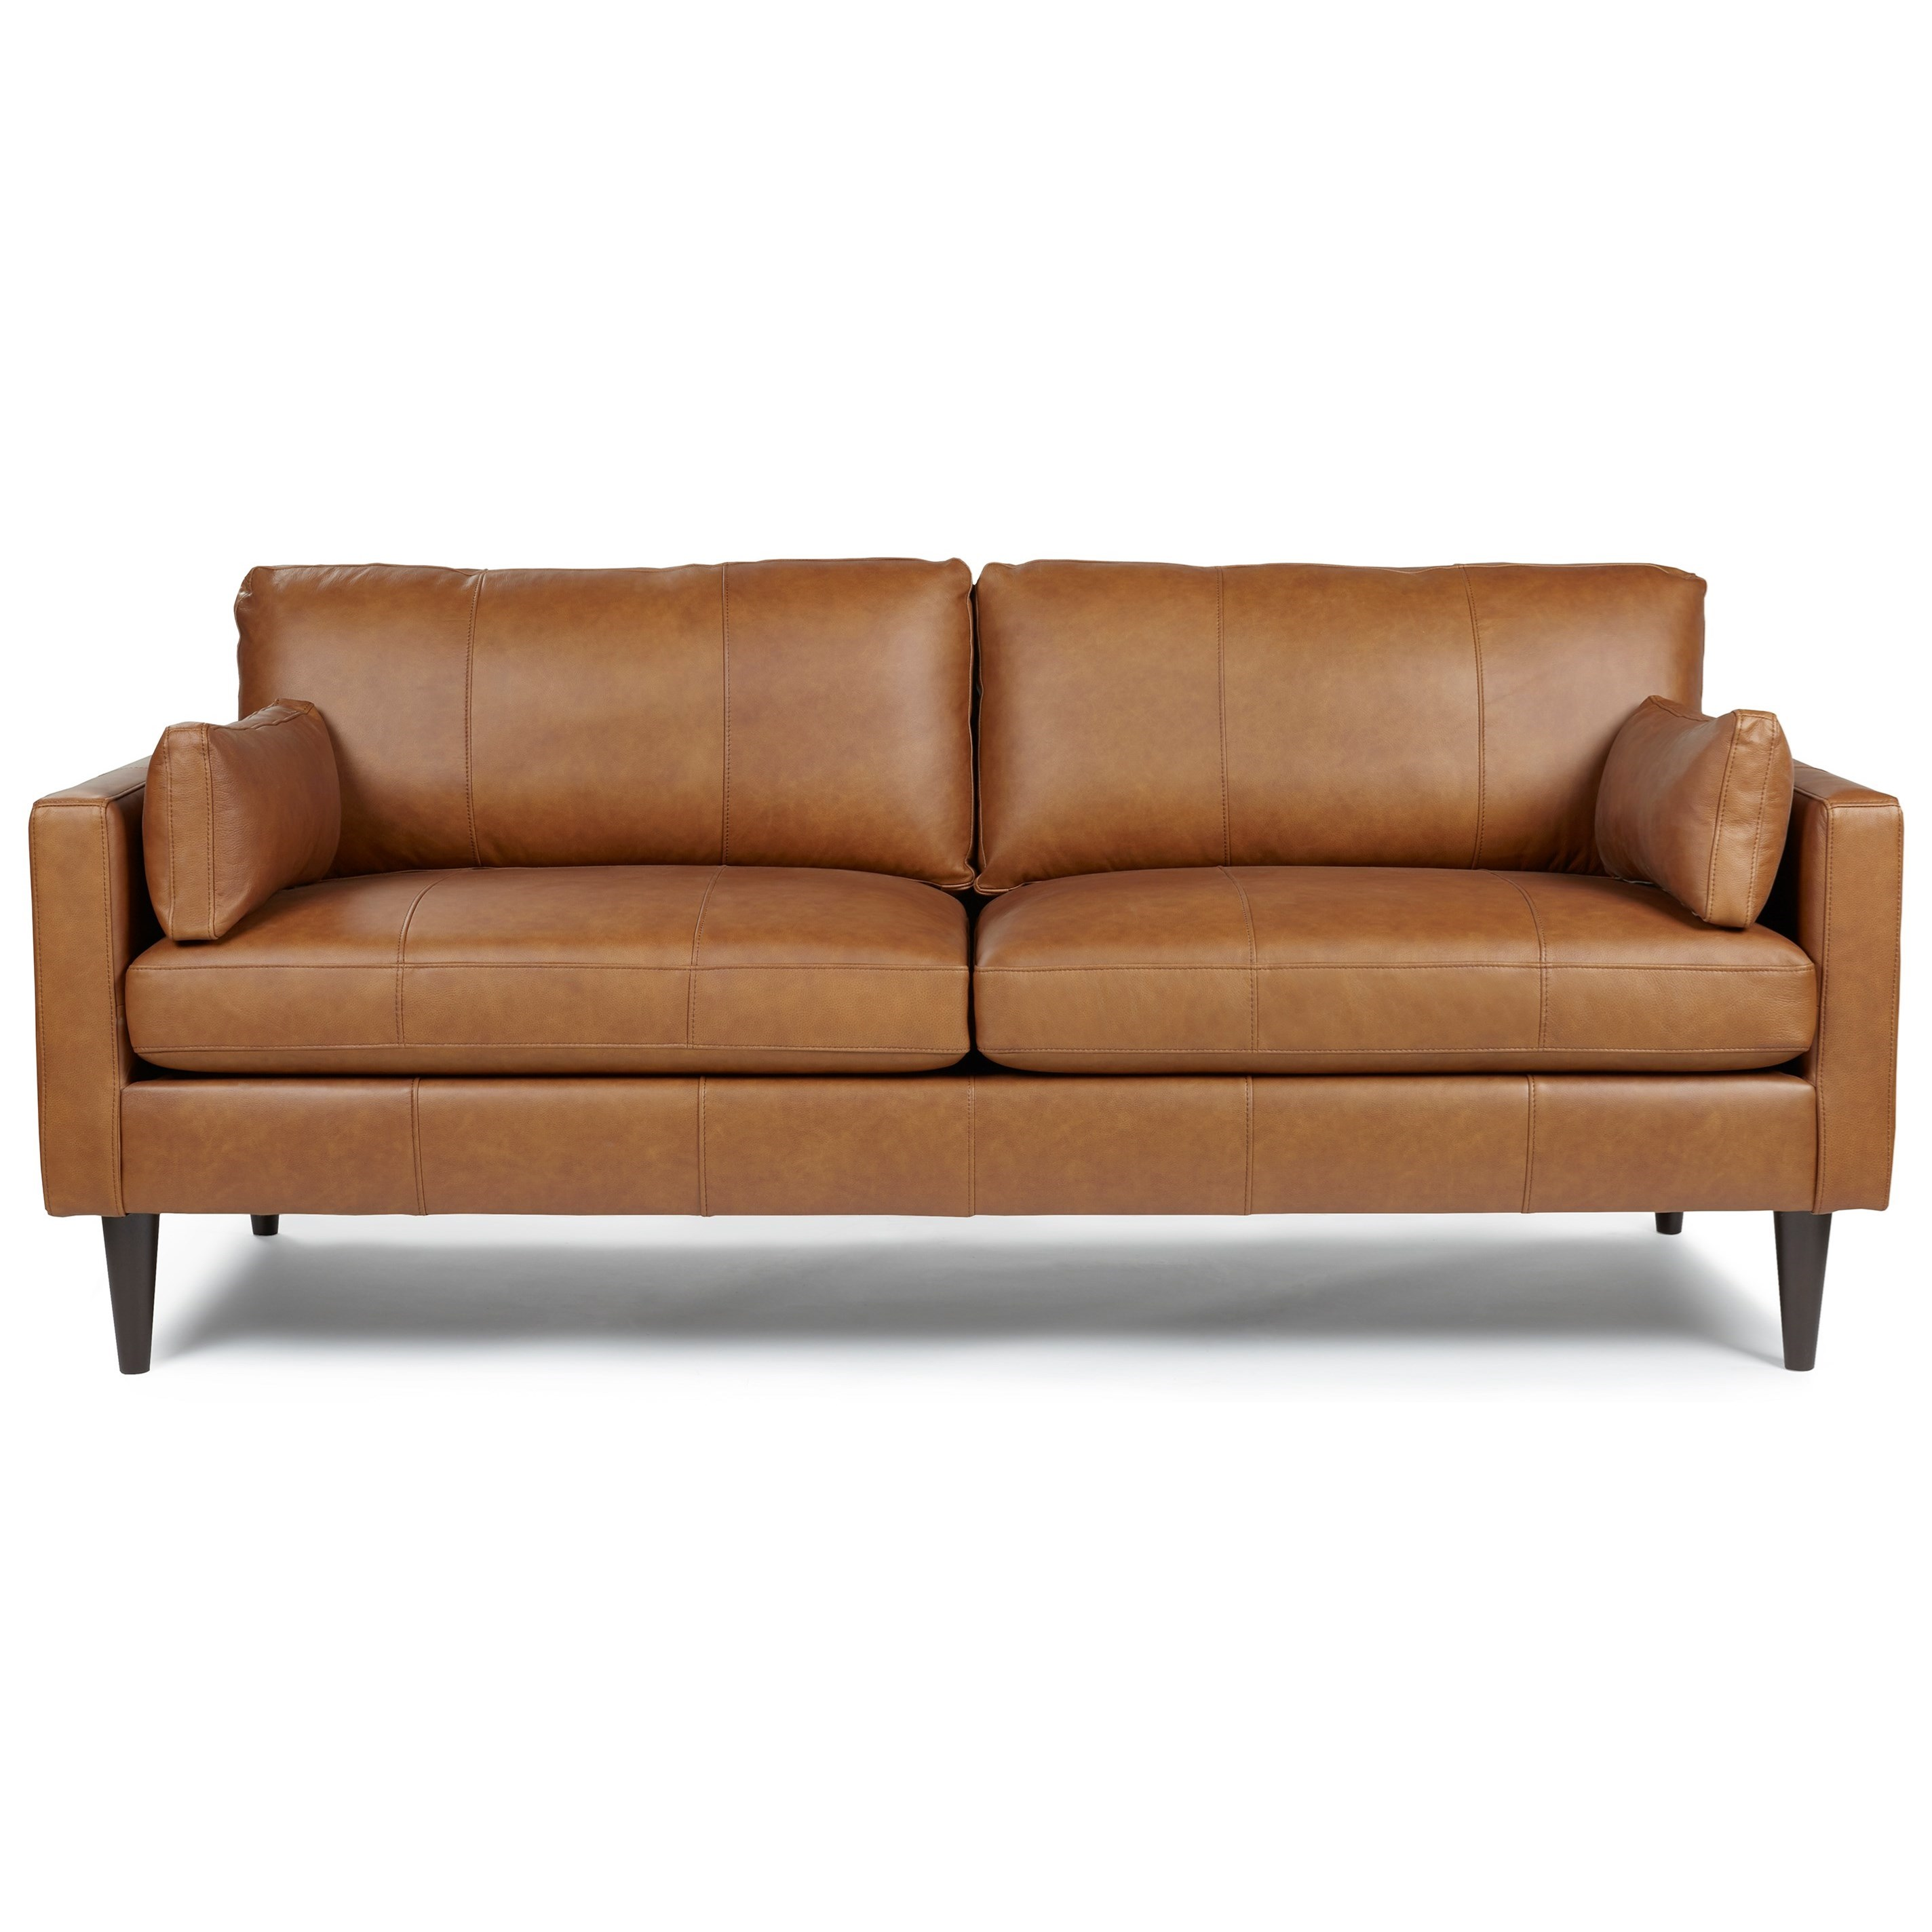 Trafton Sofa by Best Home Furnishings at Hudson's Furniture